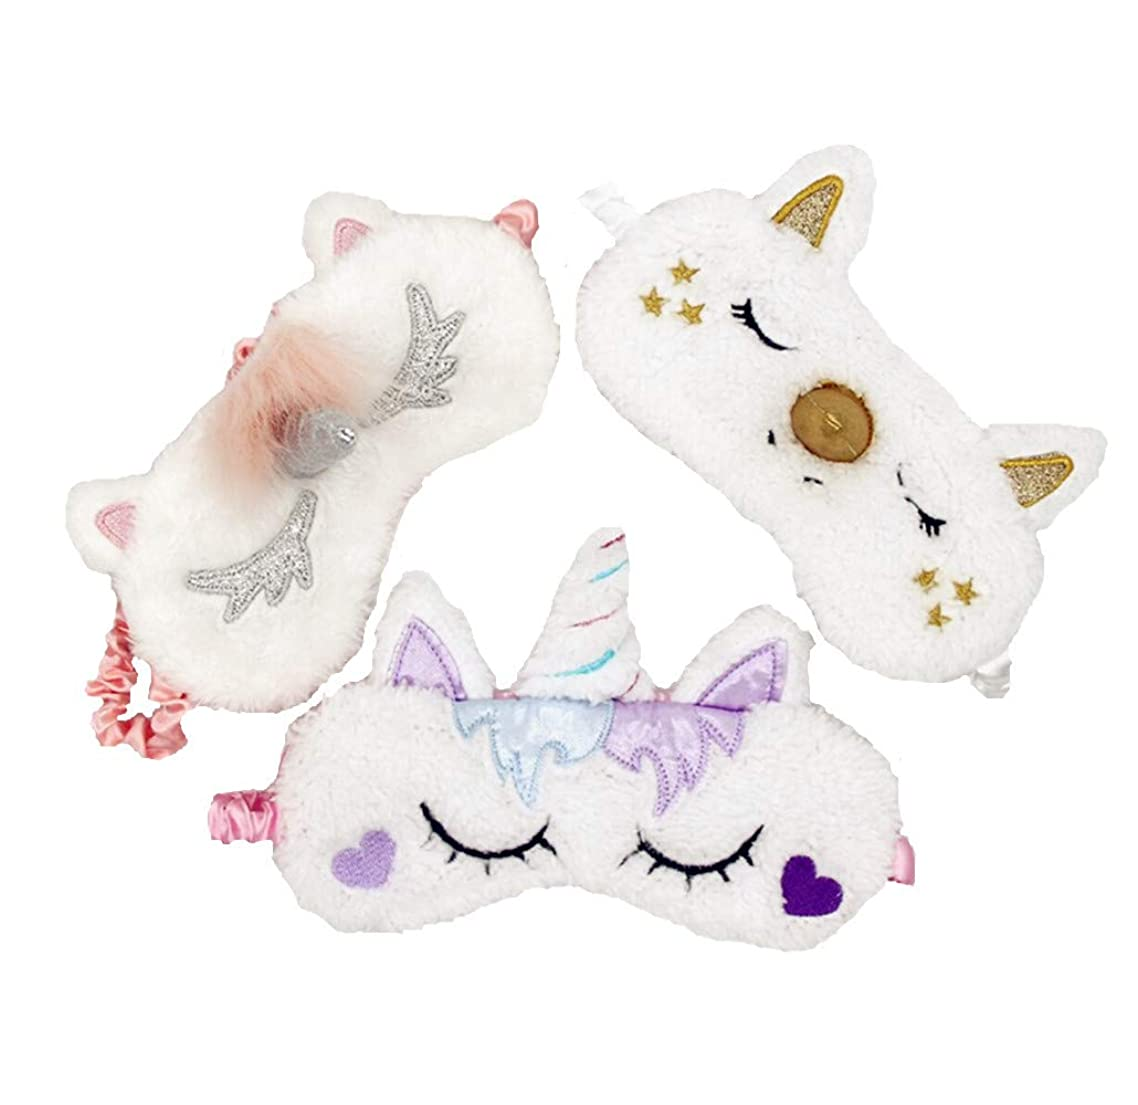 [3 PACK] MicroBird Unicorn Sleeping Mask Cute Unicorn Horn Soft Plush with silk, Blindfold Eyeshade for Kids and Women